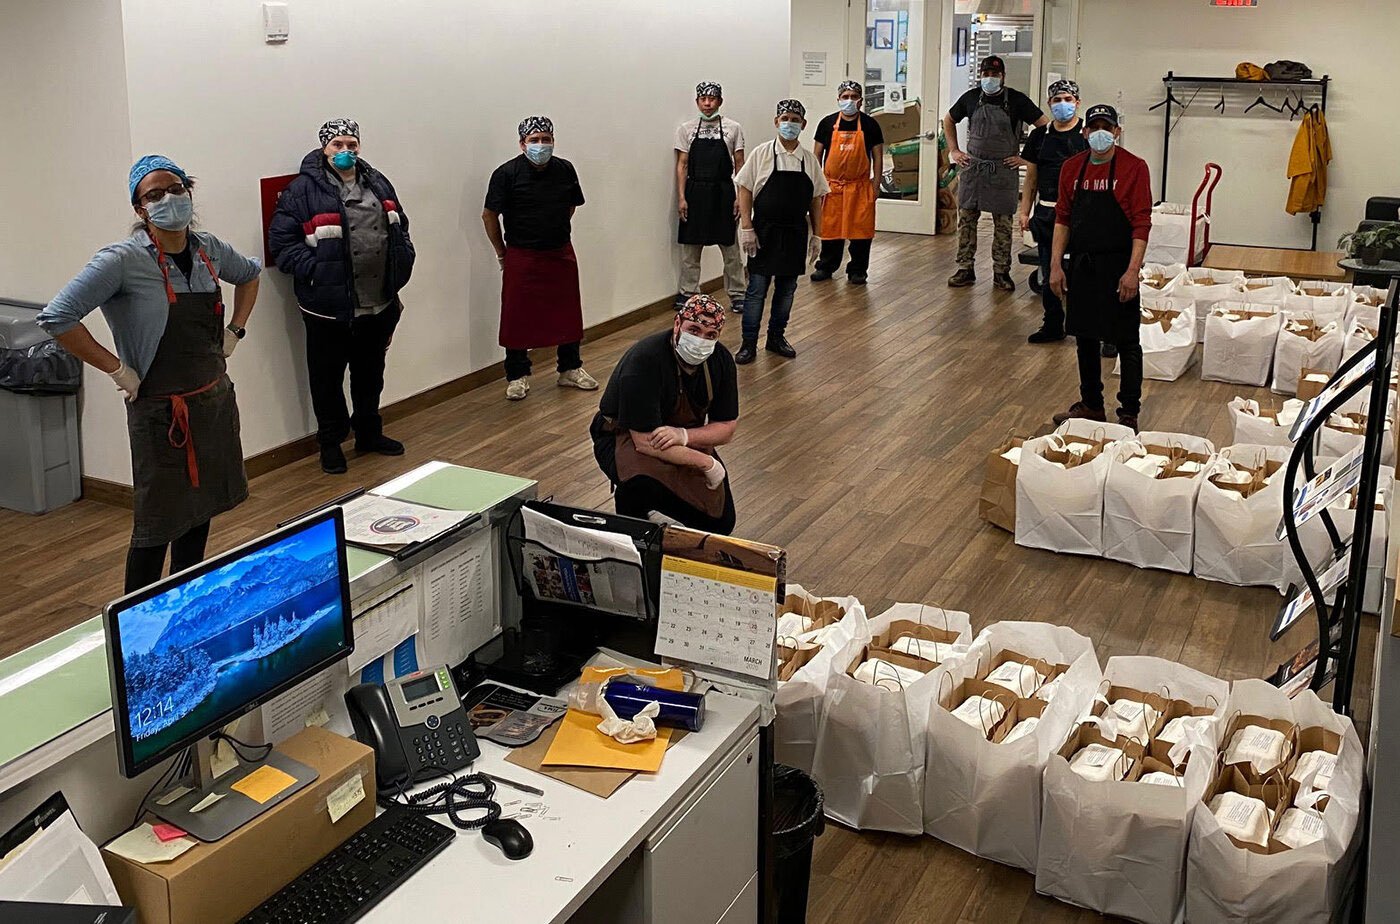 Feed the Polls Initiative to Provide Free Meals to Voters Waiting at Polls on Election Day